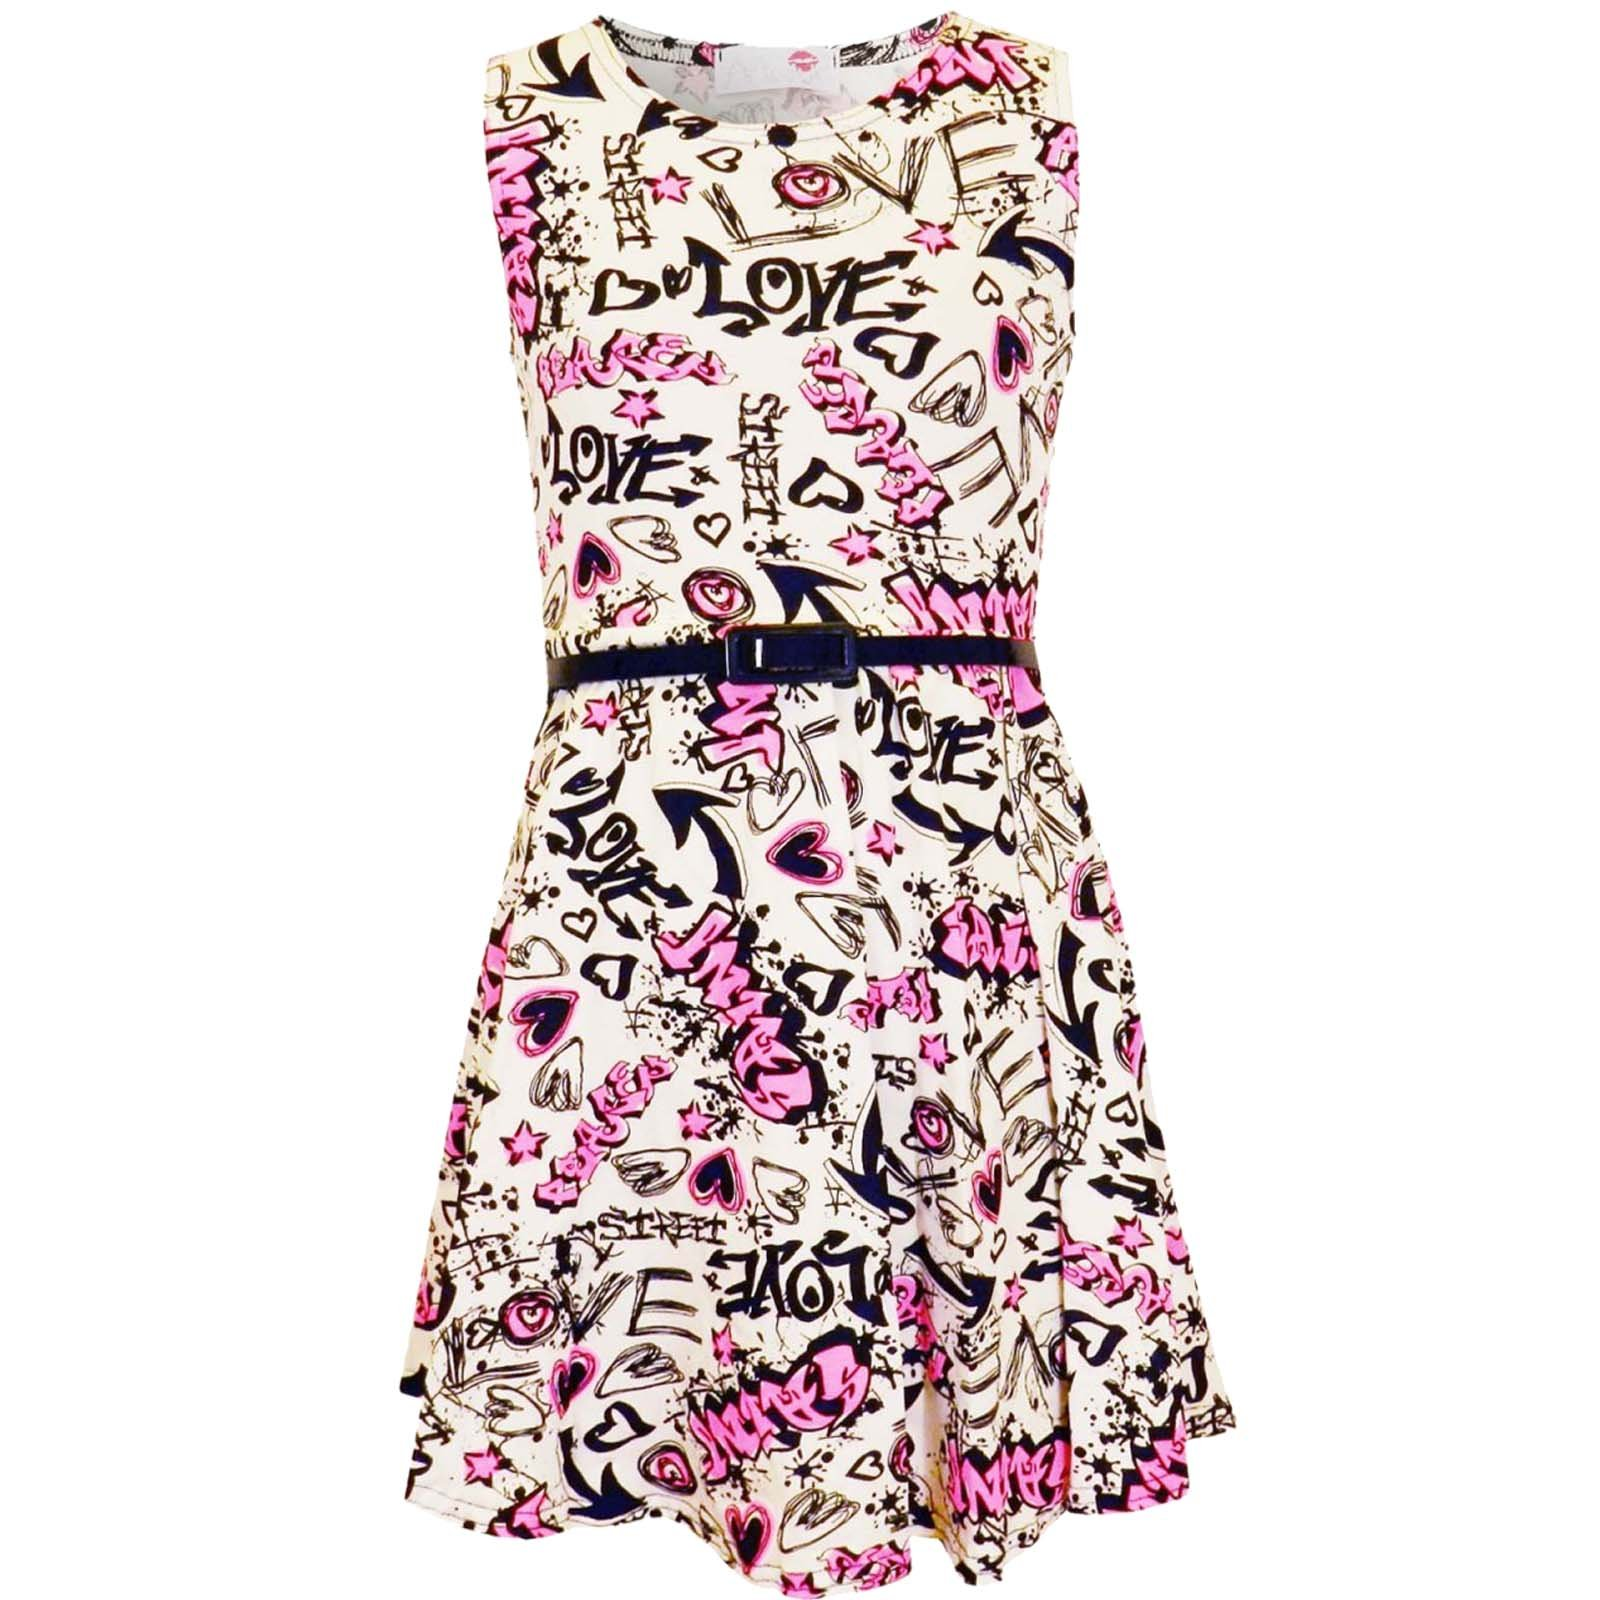 KIDS GIRLS NEW LOVE COMIC GRAFFITI PRINT LEGGING SKATER MIDI DRESS CROP TOP 2-13